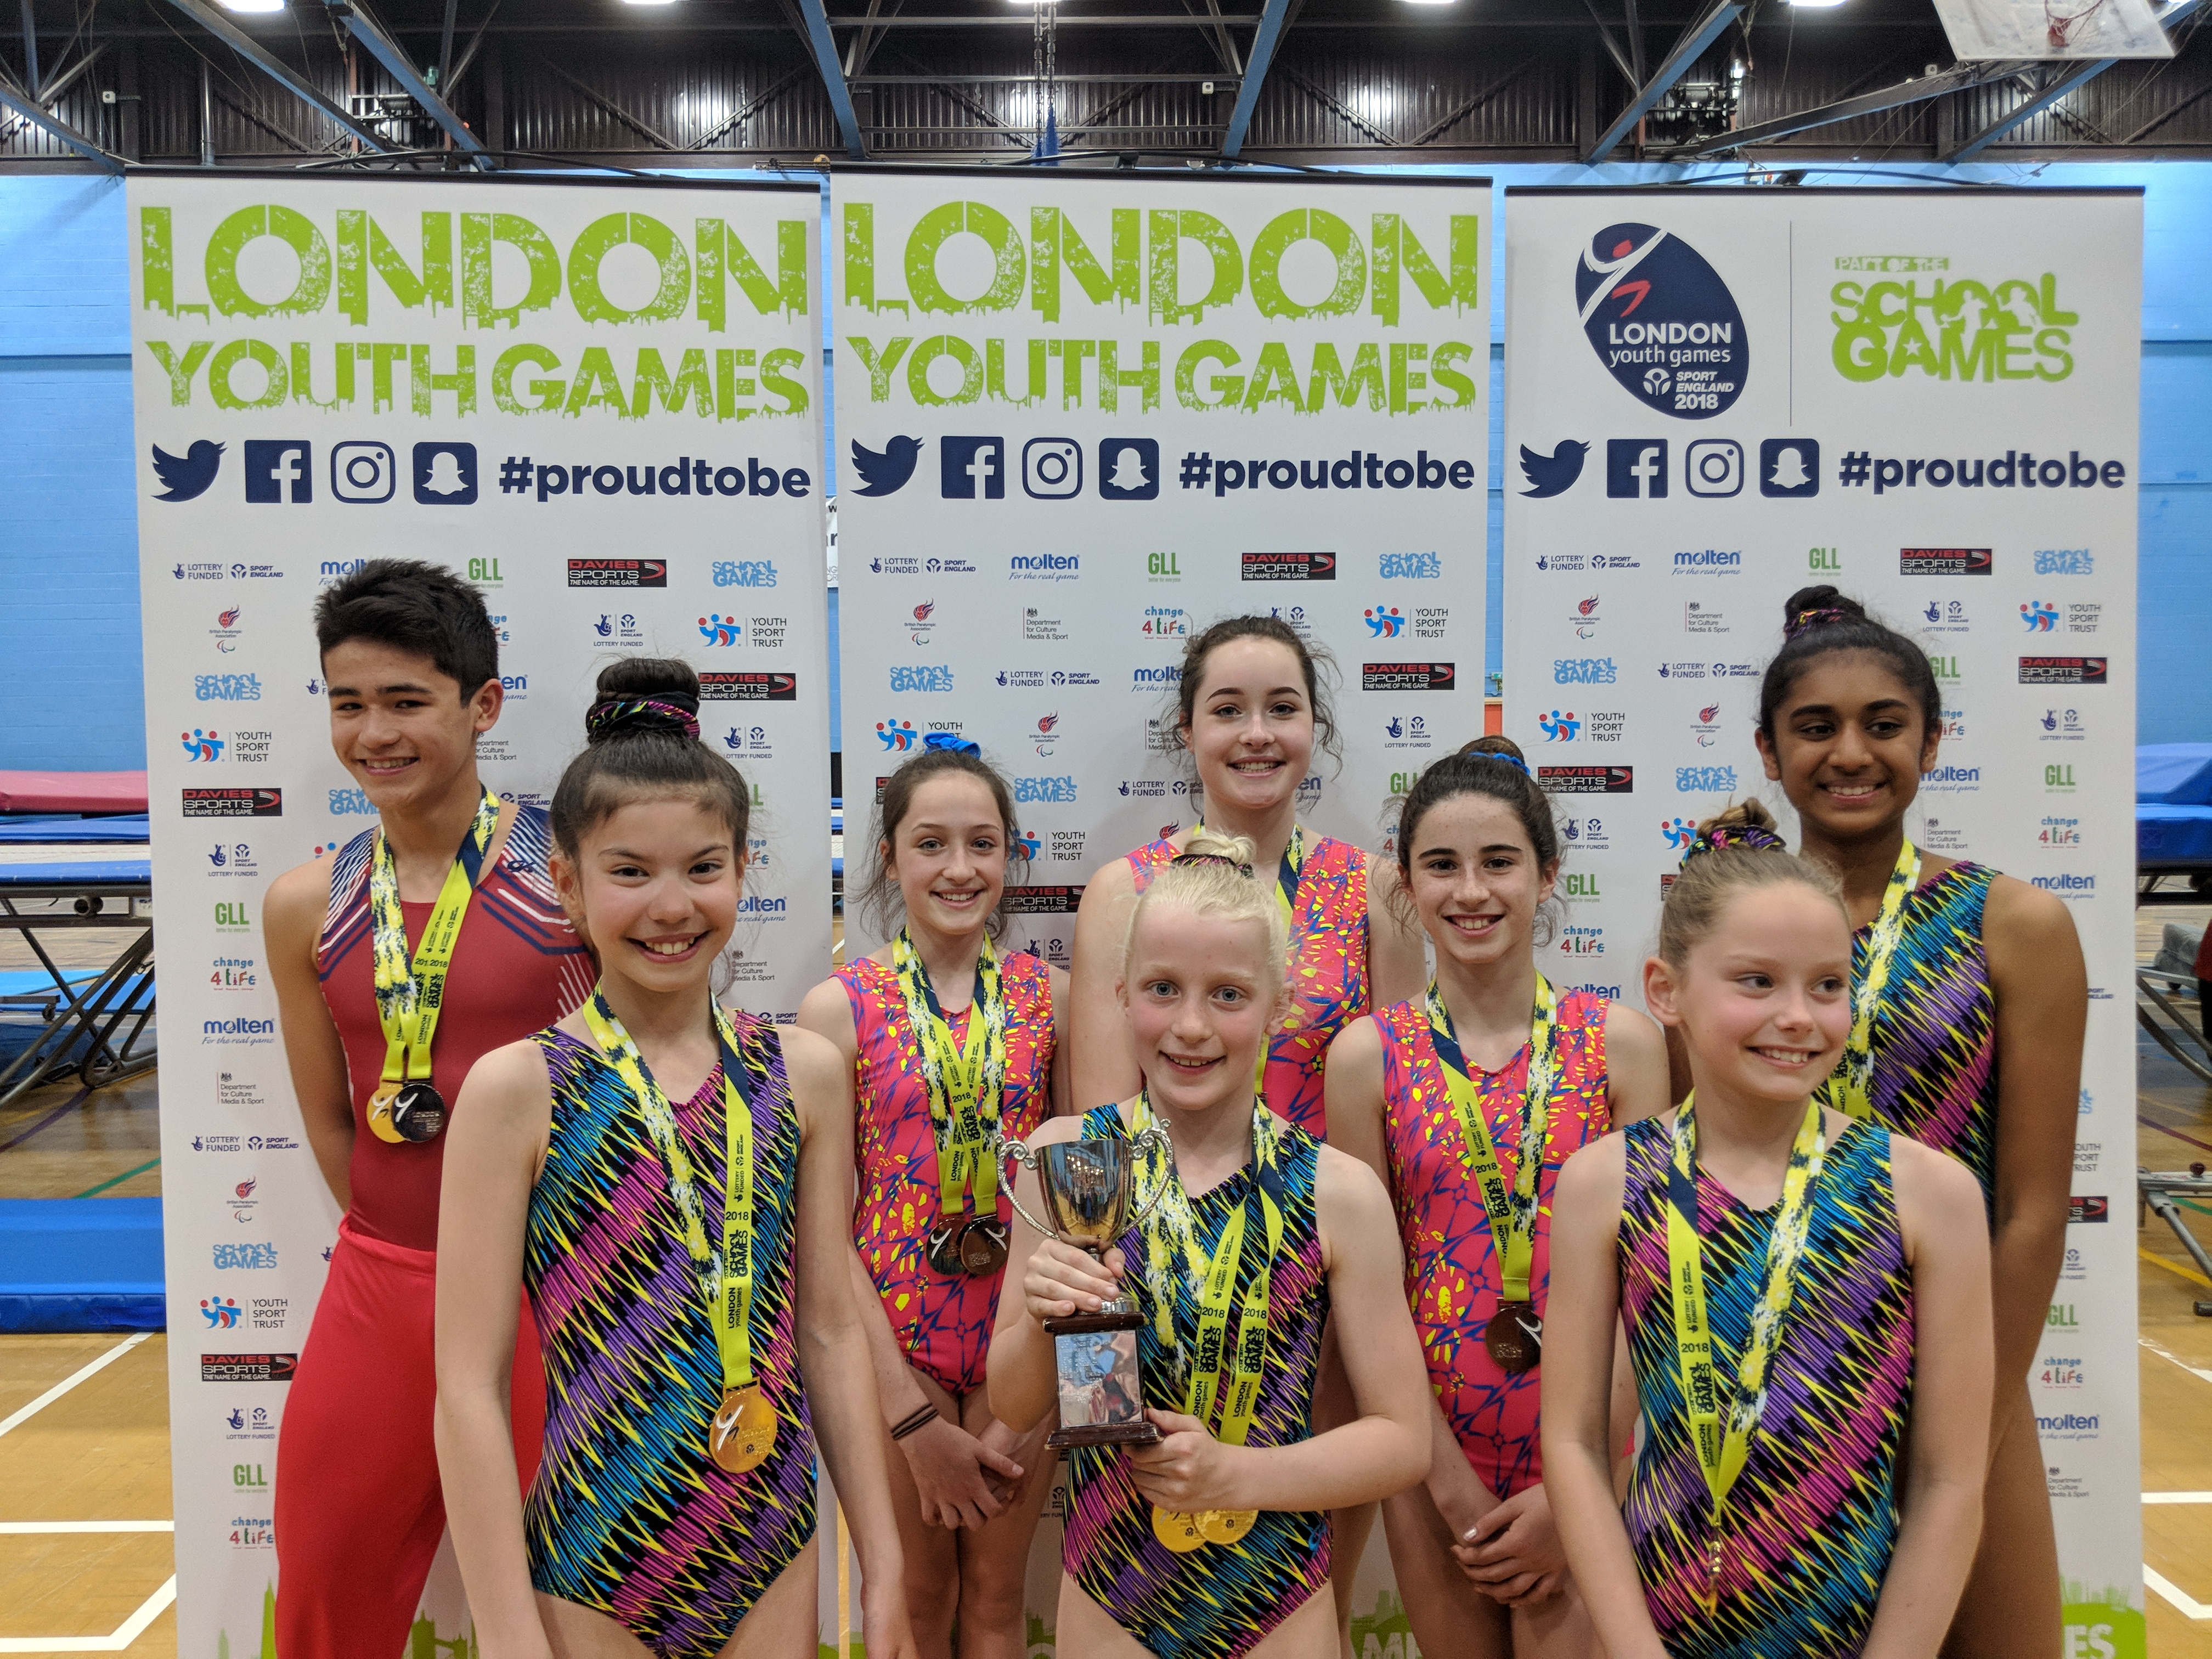 trampoline London youth games